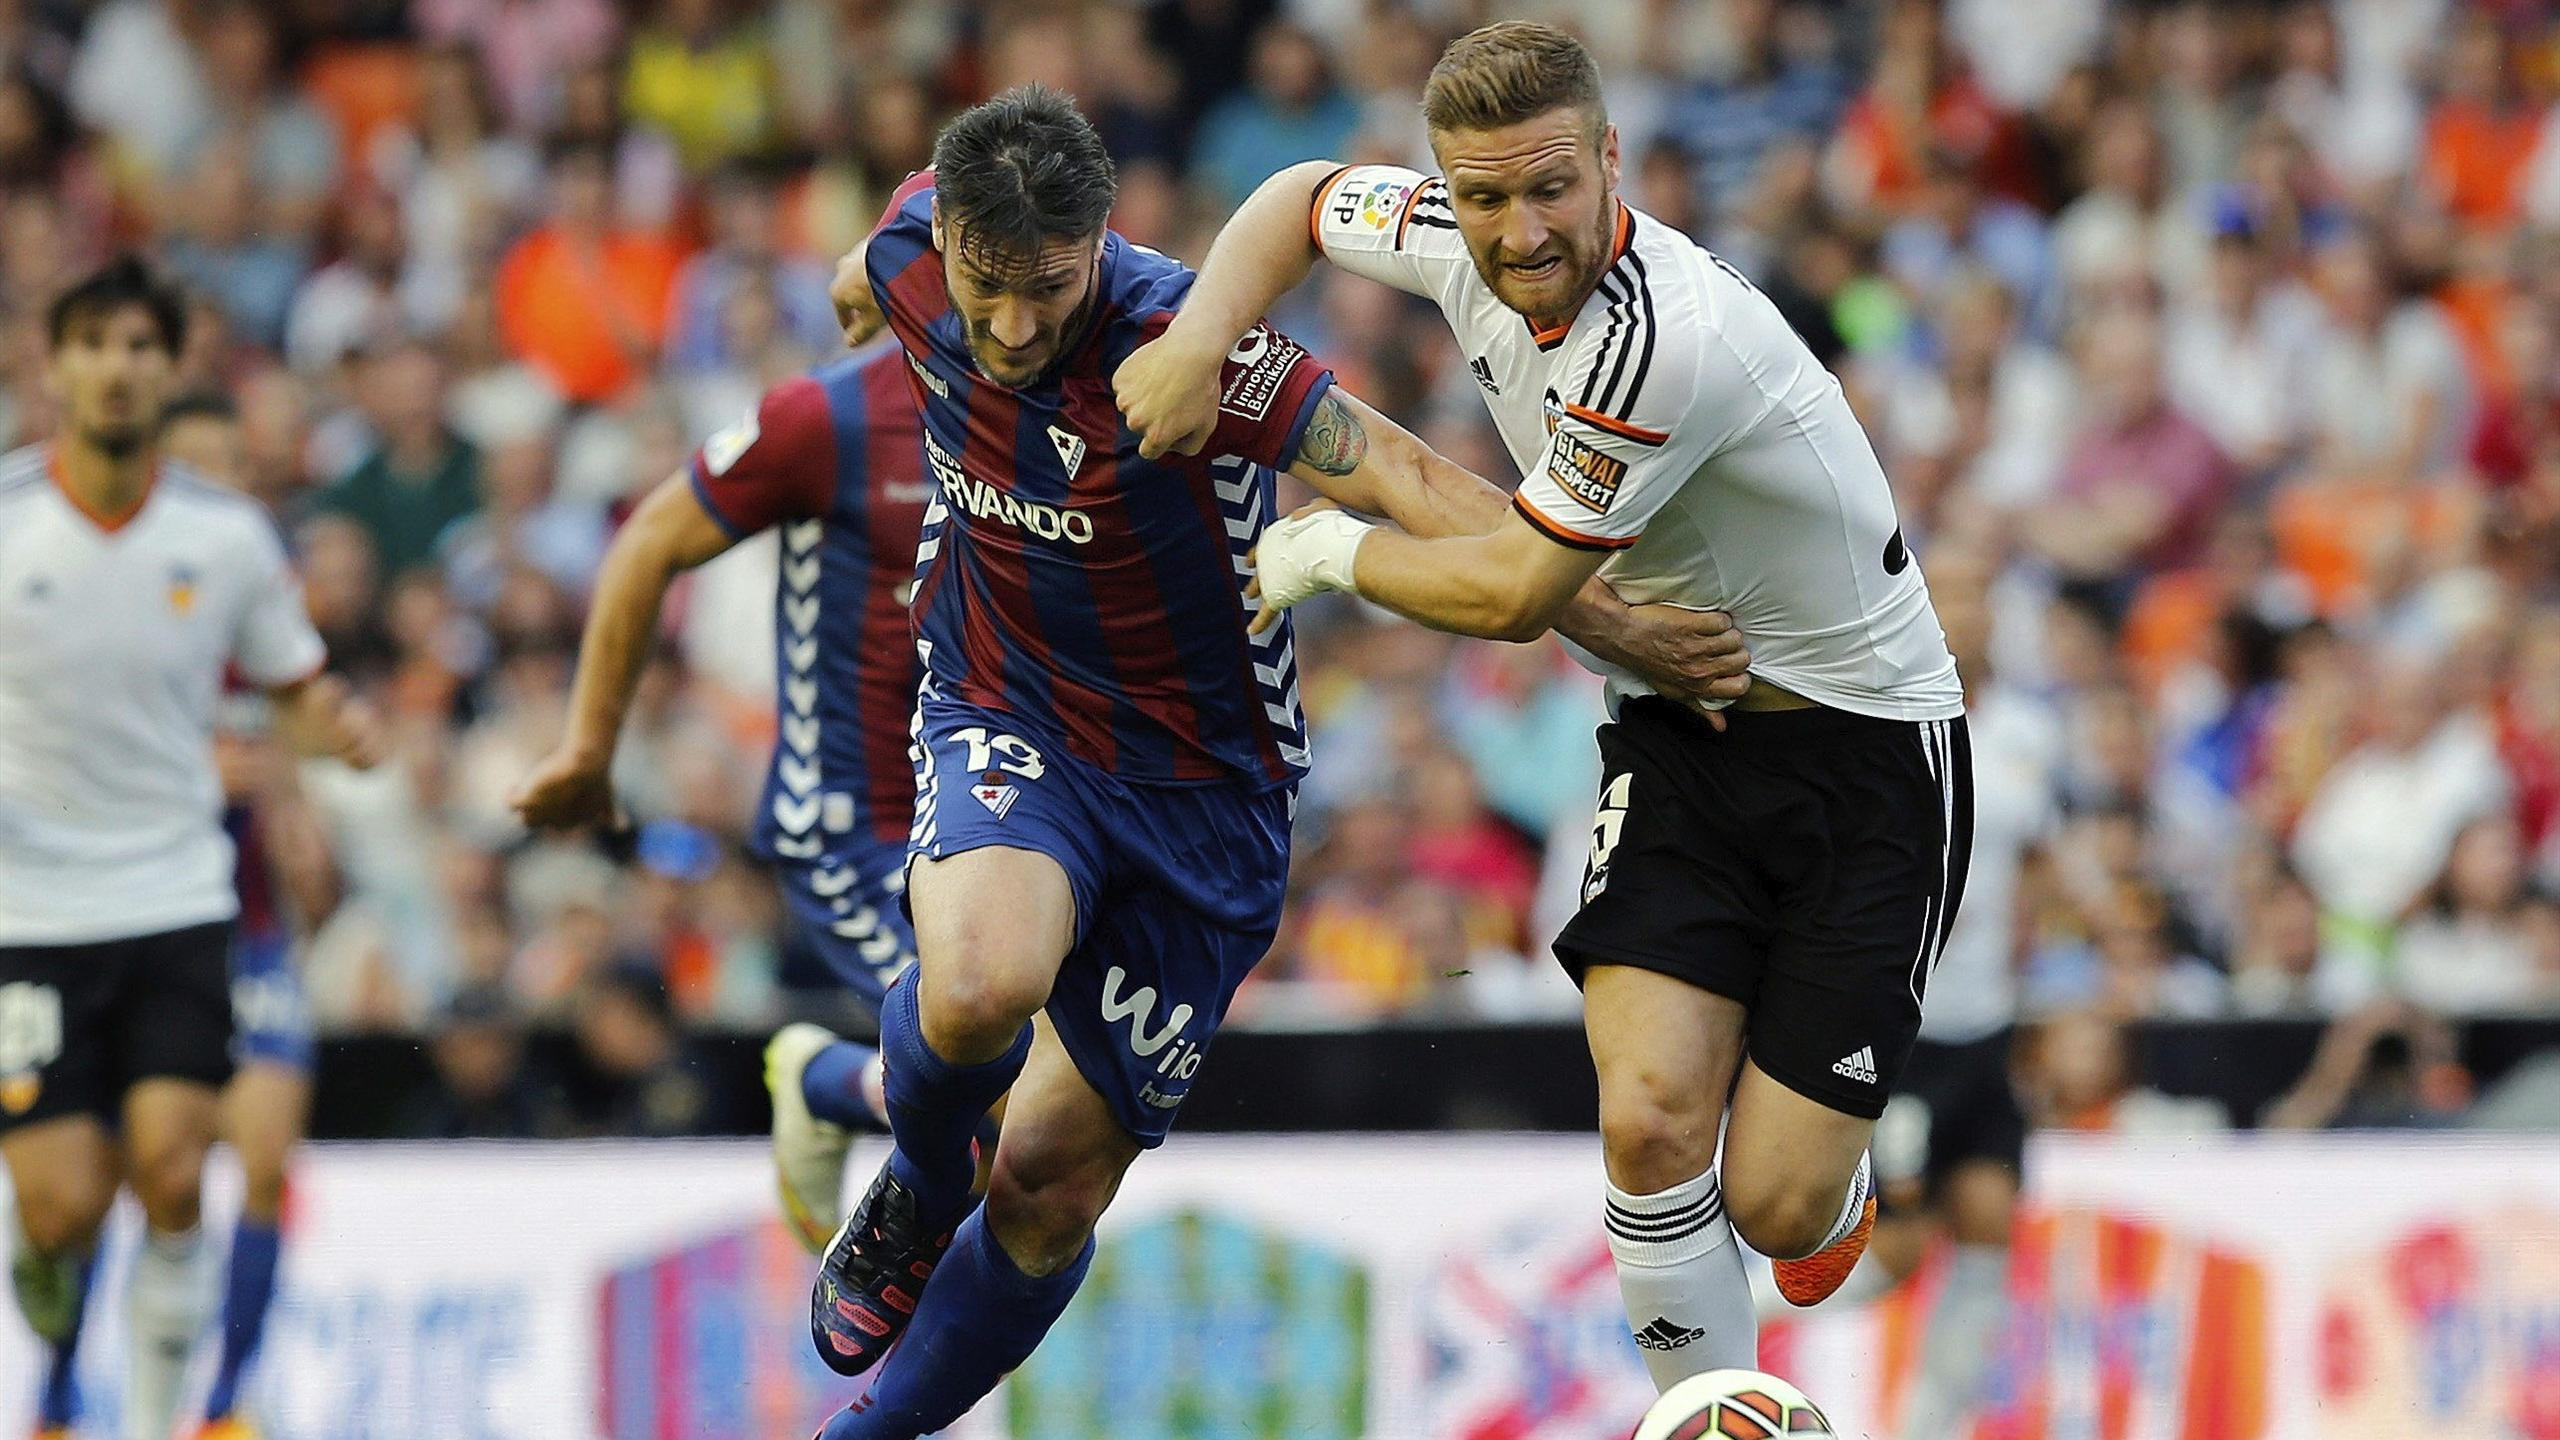 Video: Valencia vs Eibar